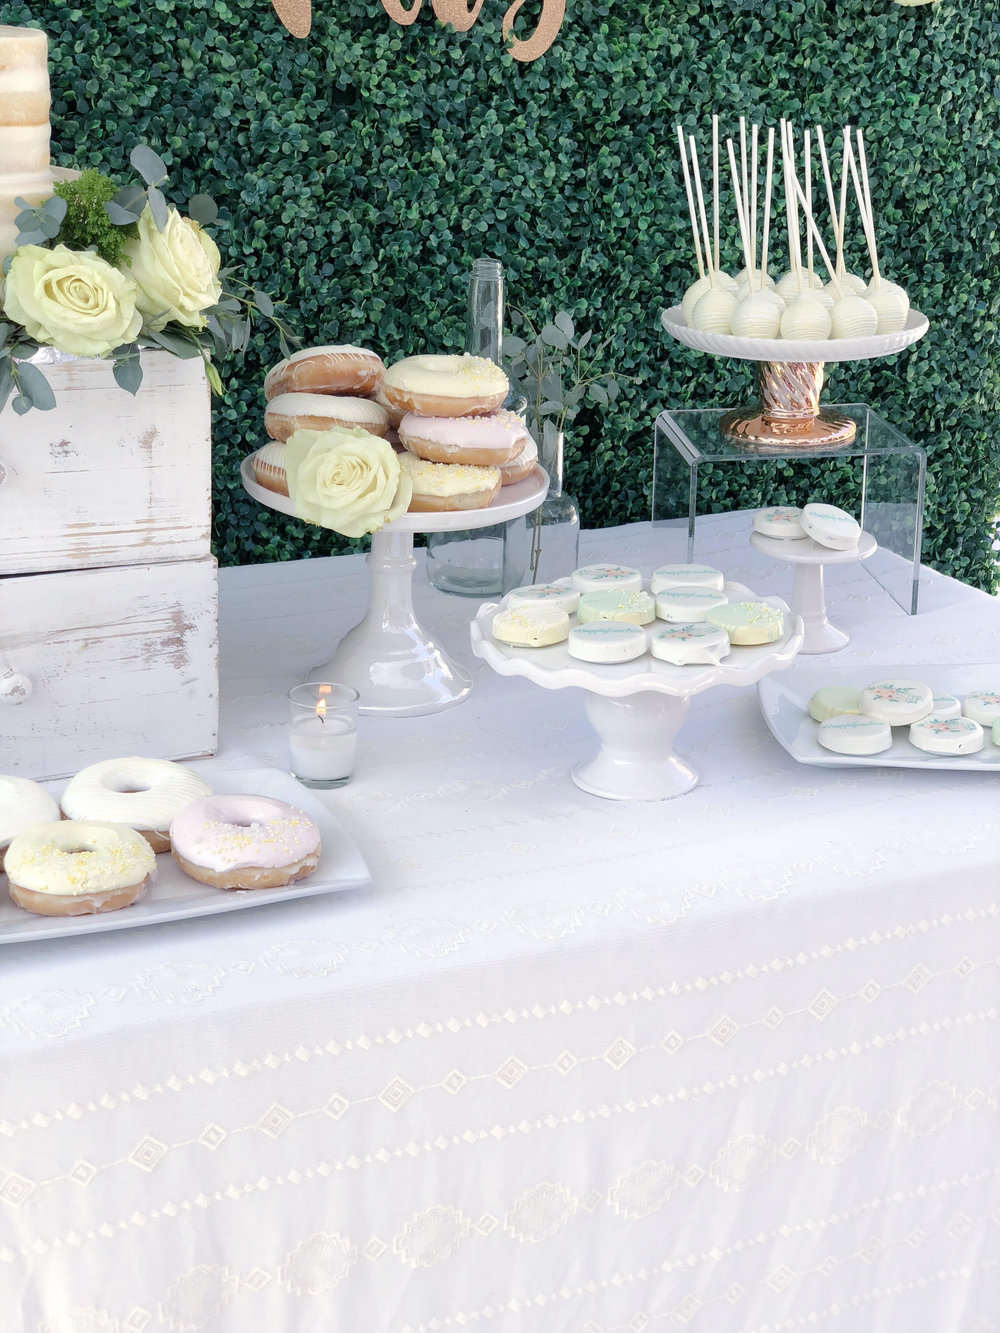 Bridal Shower dessert table-Garden shower-garden bridal shower-www.sugarpartiesla.com.jpg